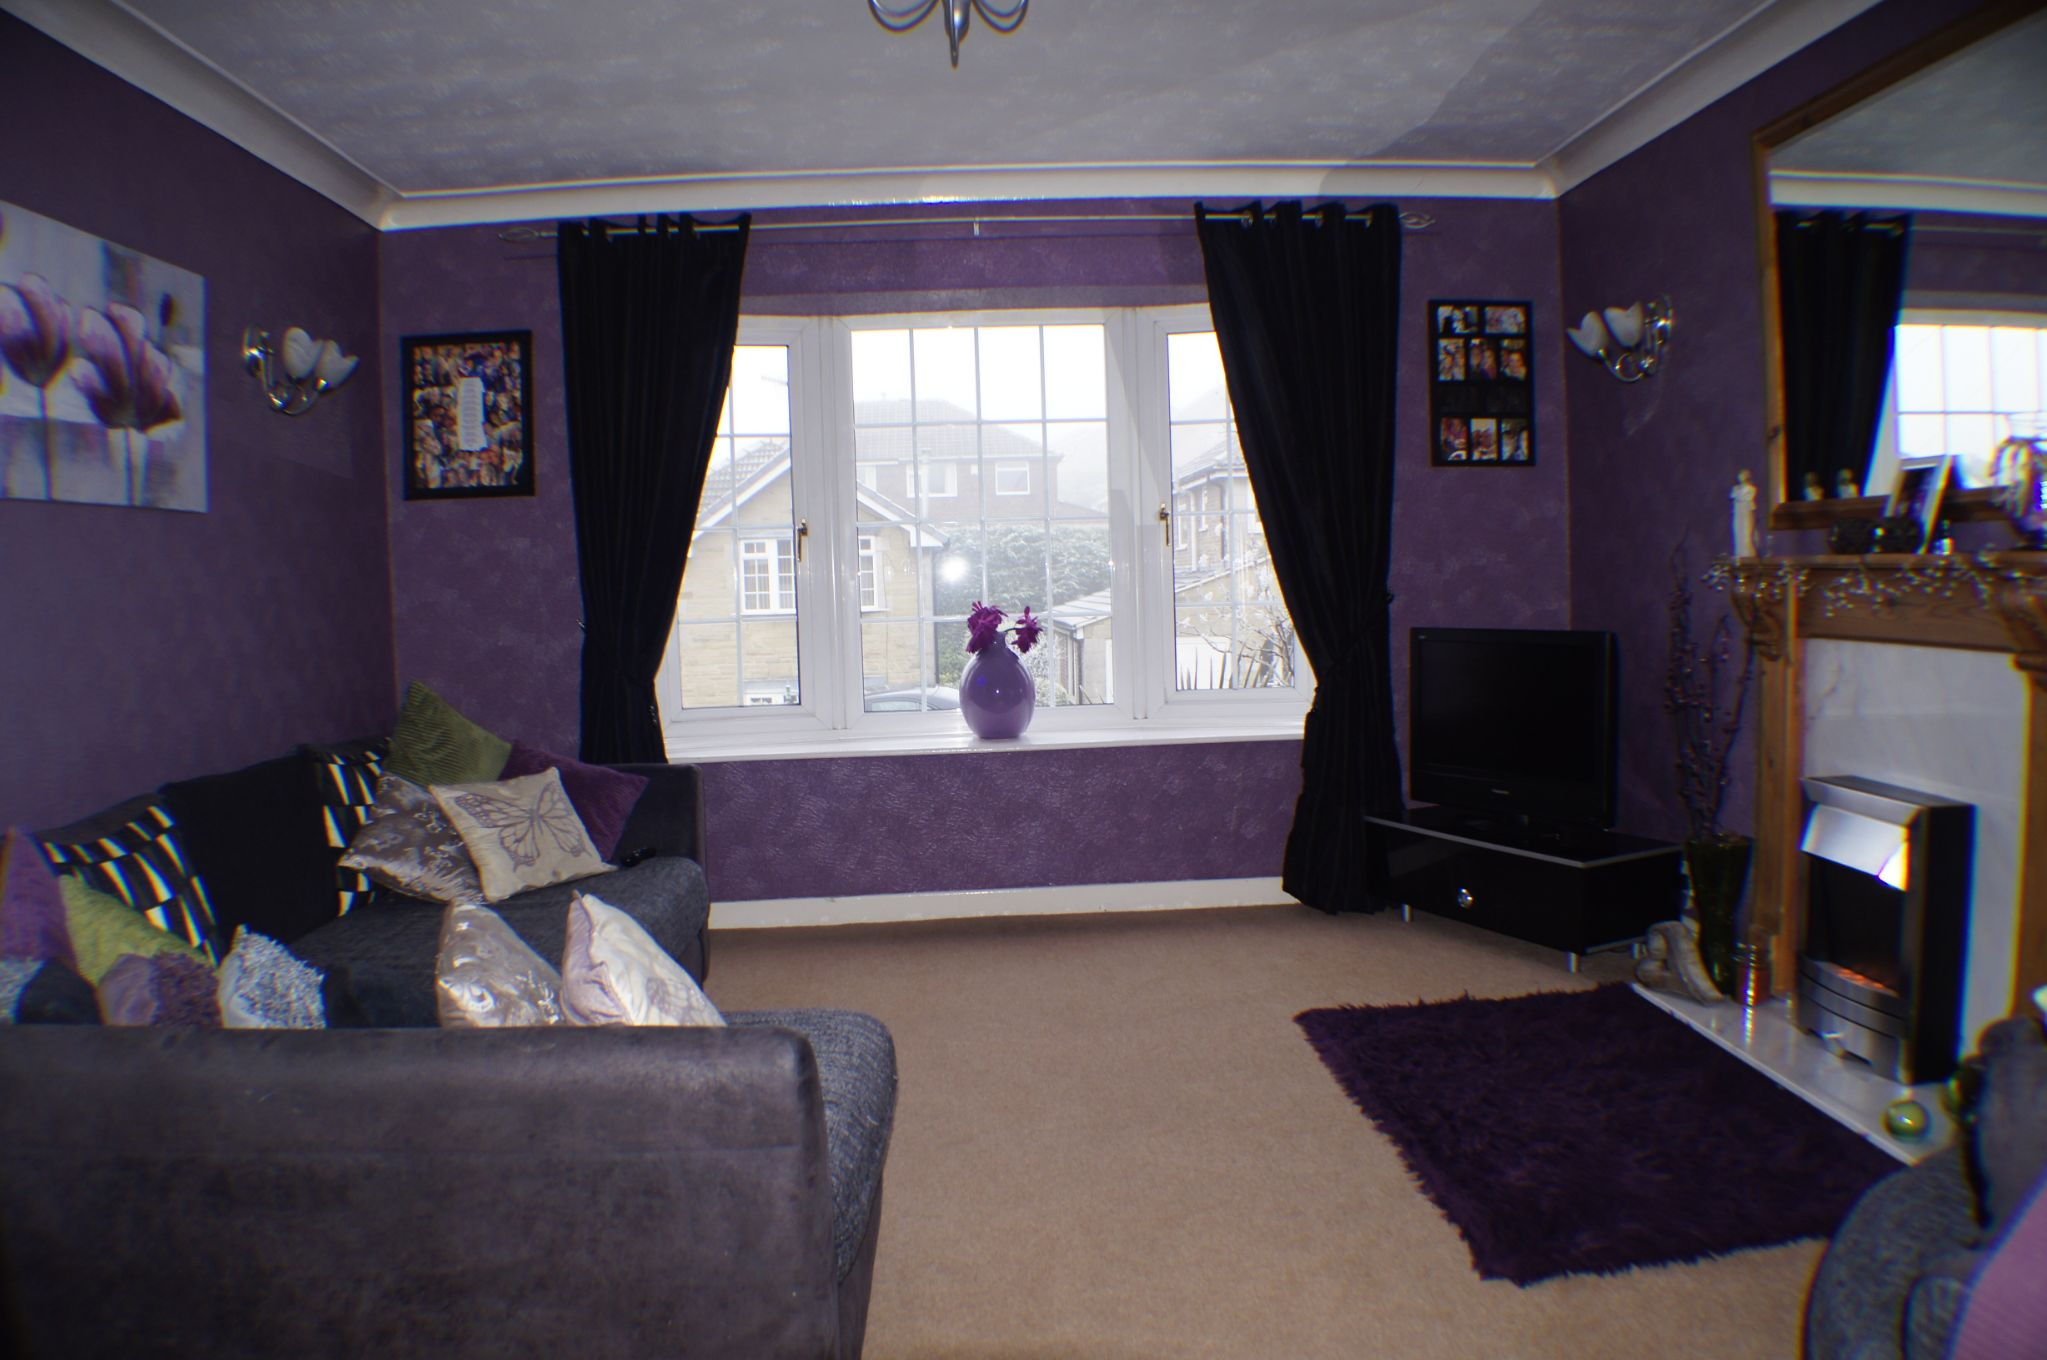 3 bedroom detached house in Bradford - Photograph 4.